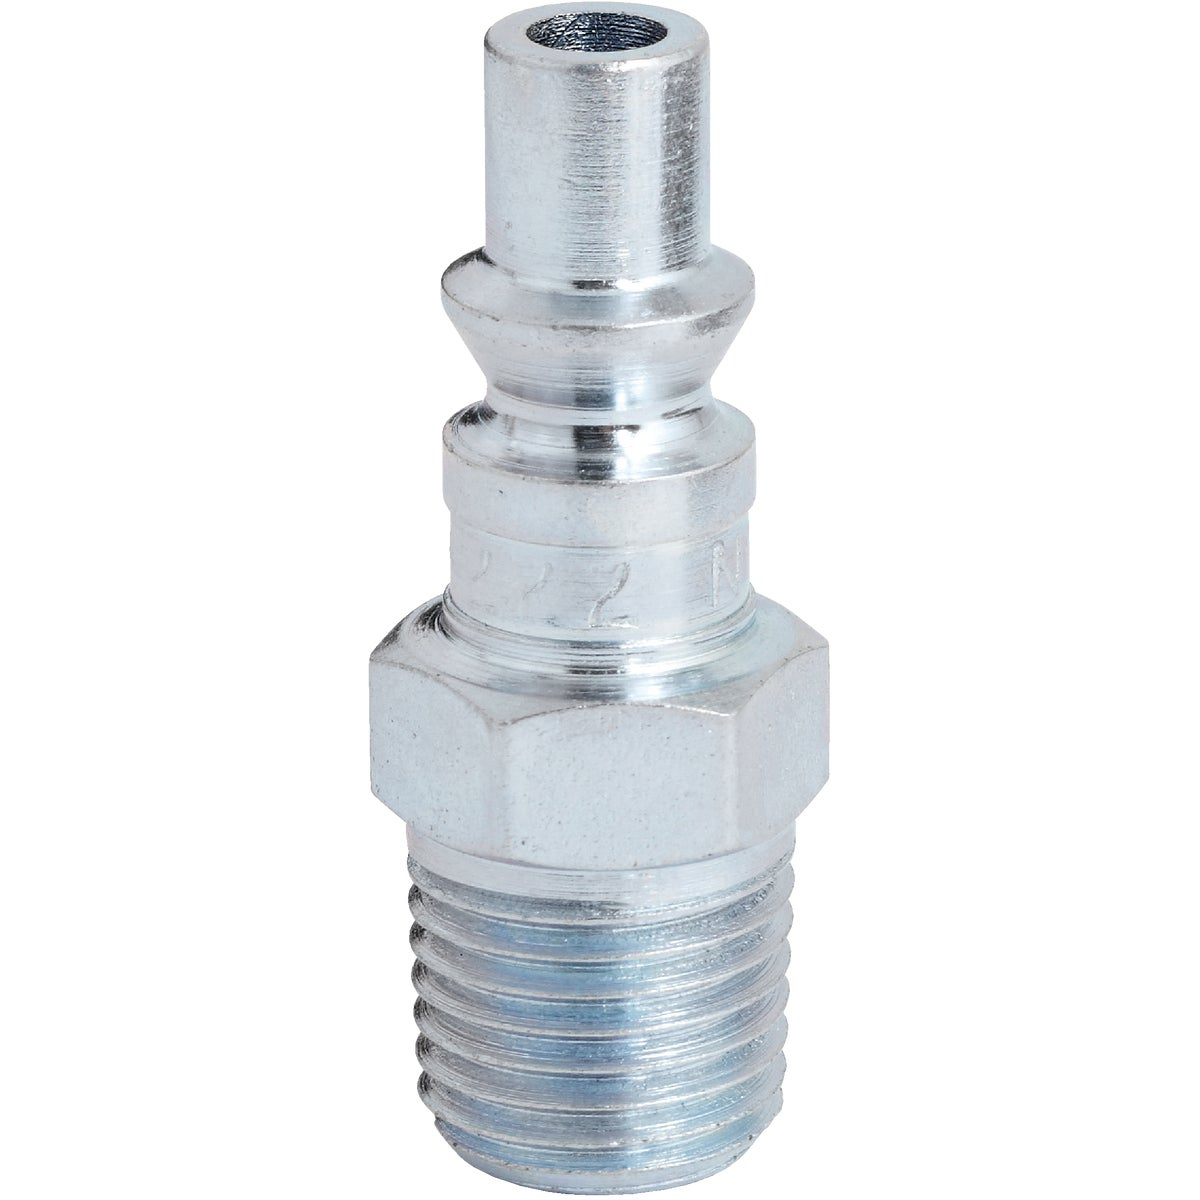 1/4 MALE A STYLE PLUG - S-777 by Milton Ind/ Incom